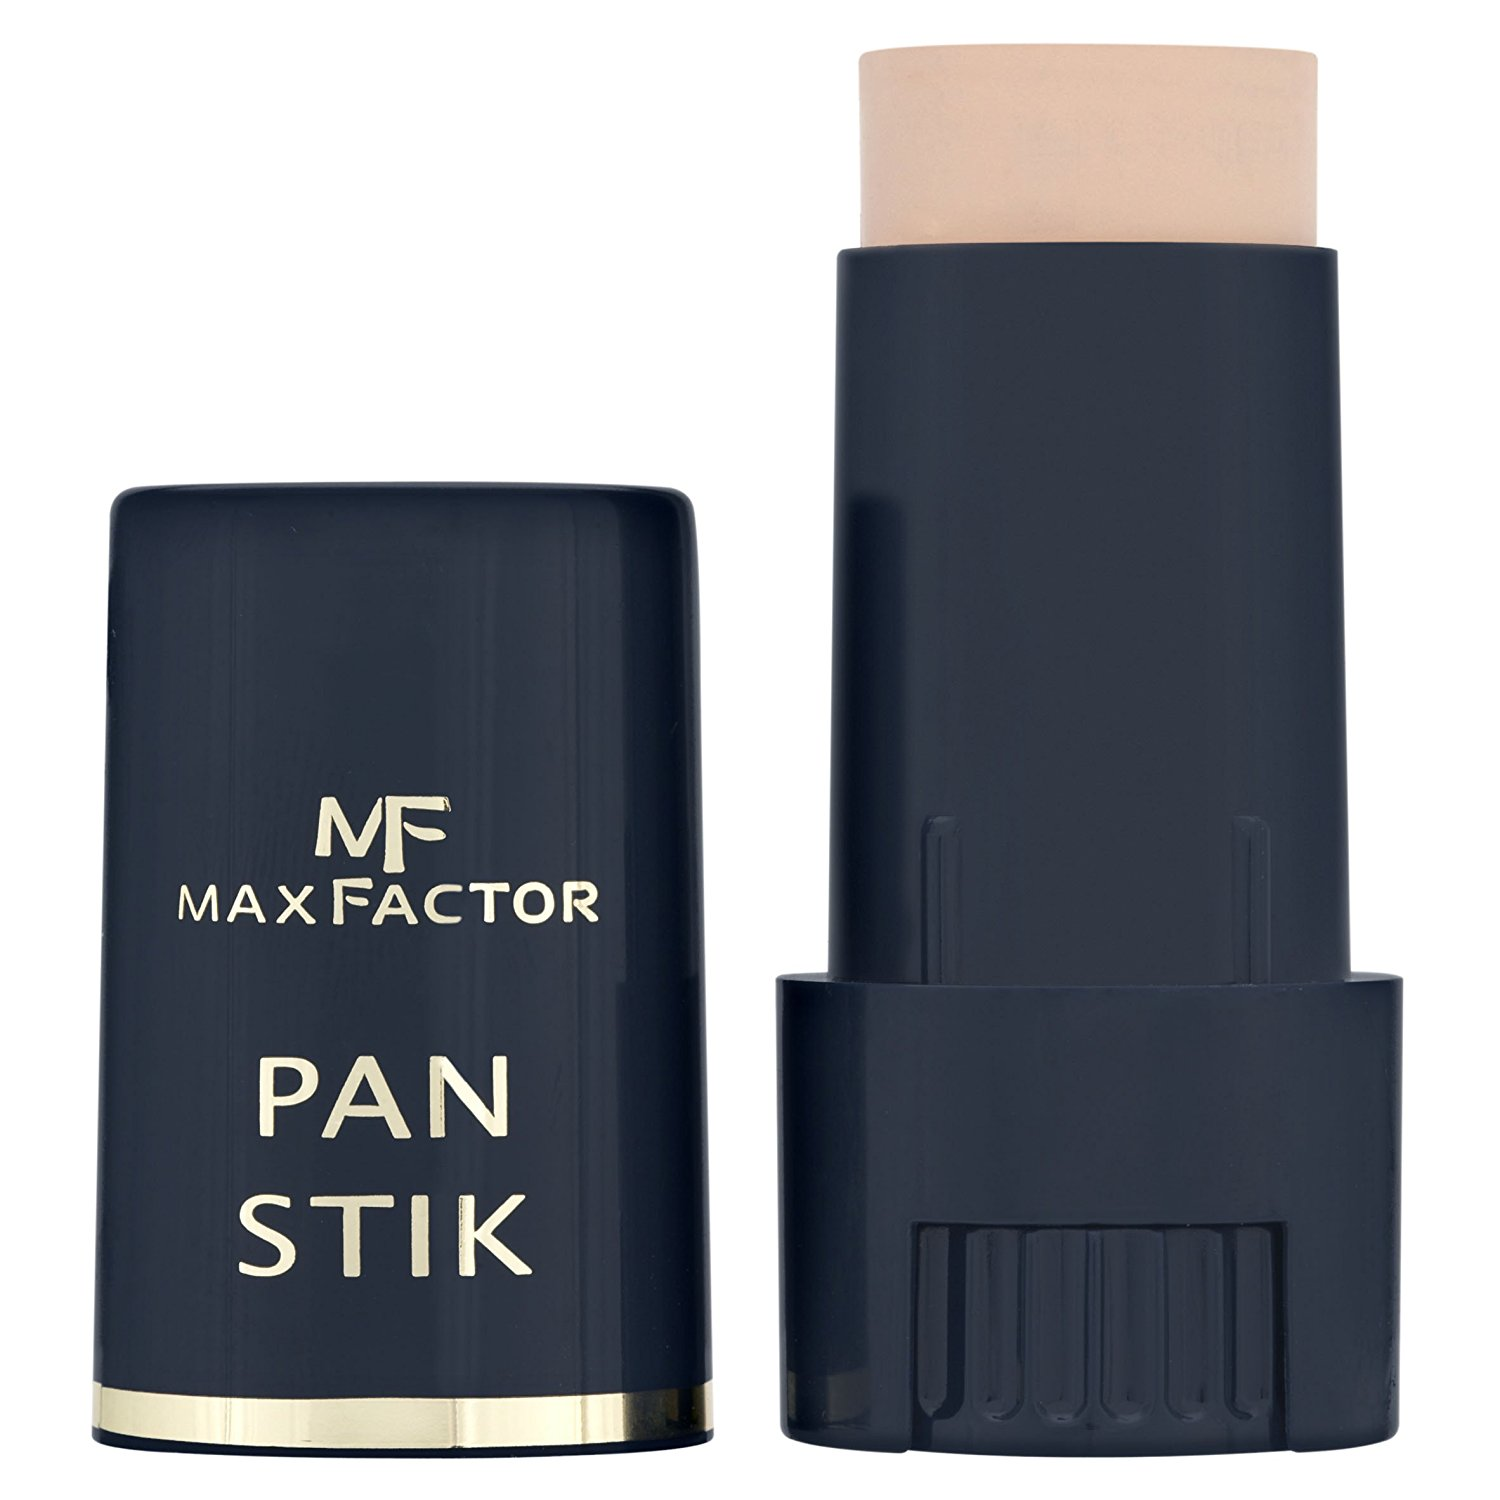 MAX FACTOR PAN STIK COOL BRONZE 97